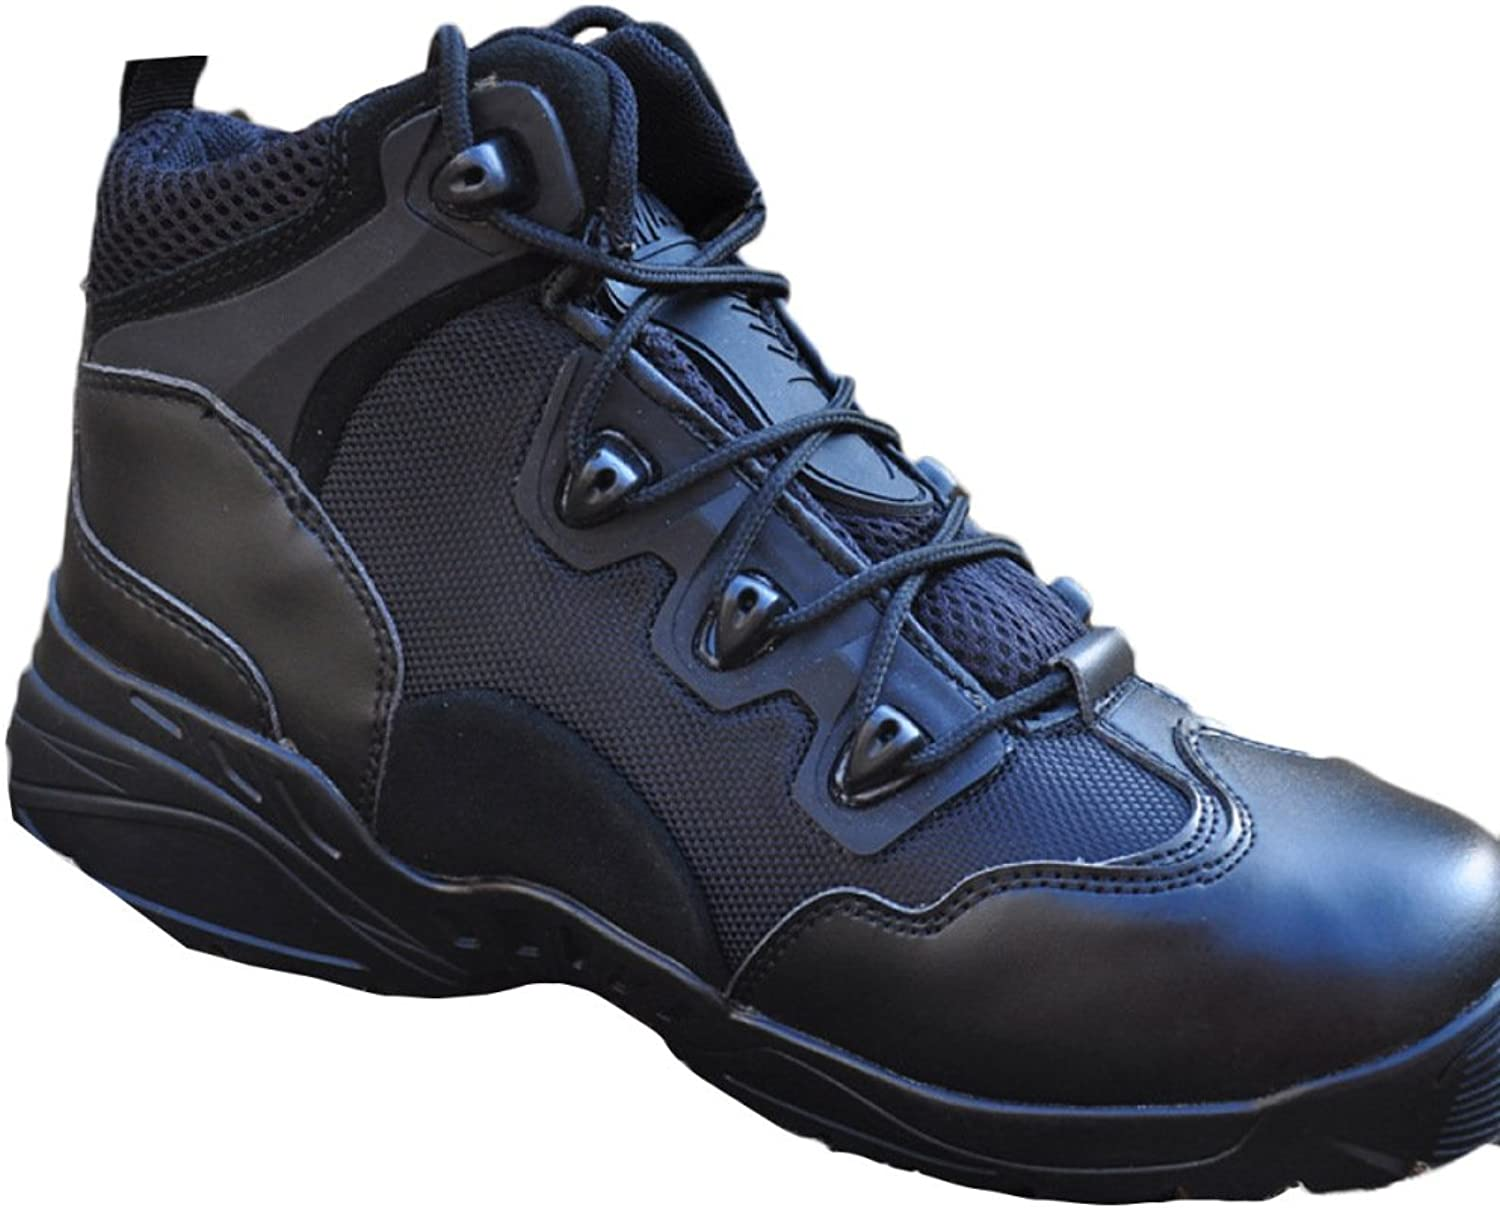 Hiking shoes Men Waterproof Leather Lightweight Ultralight Combat Boots Special Forces Military Boots